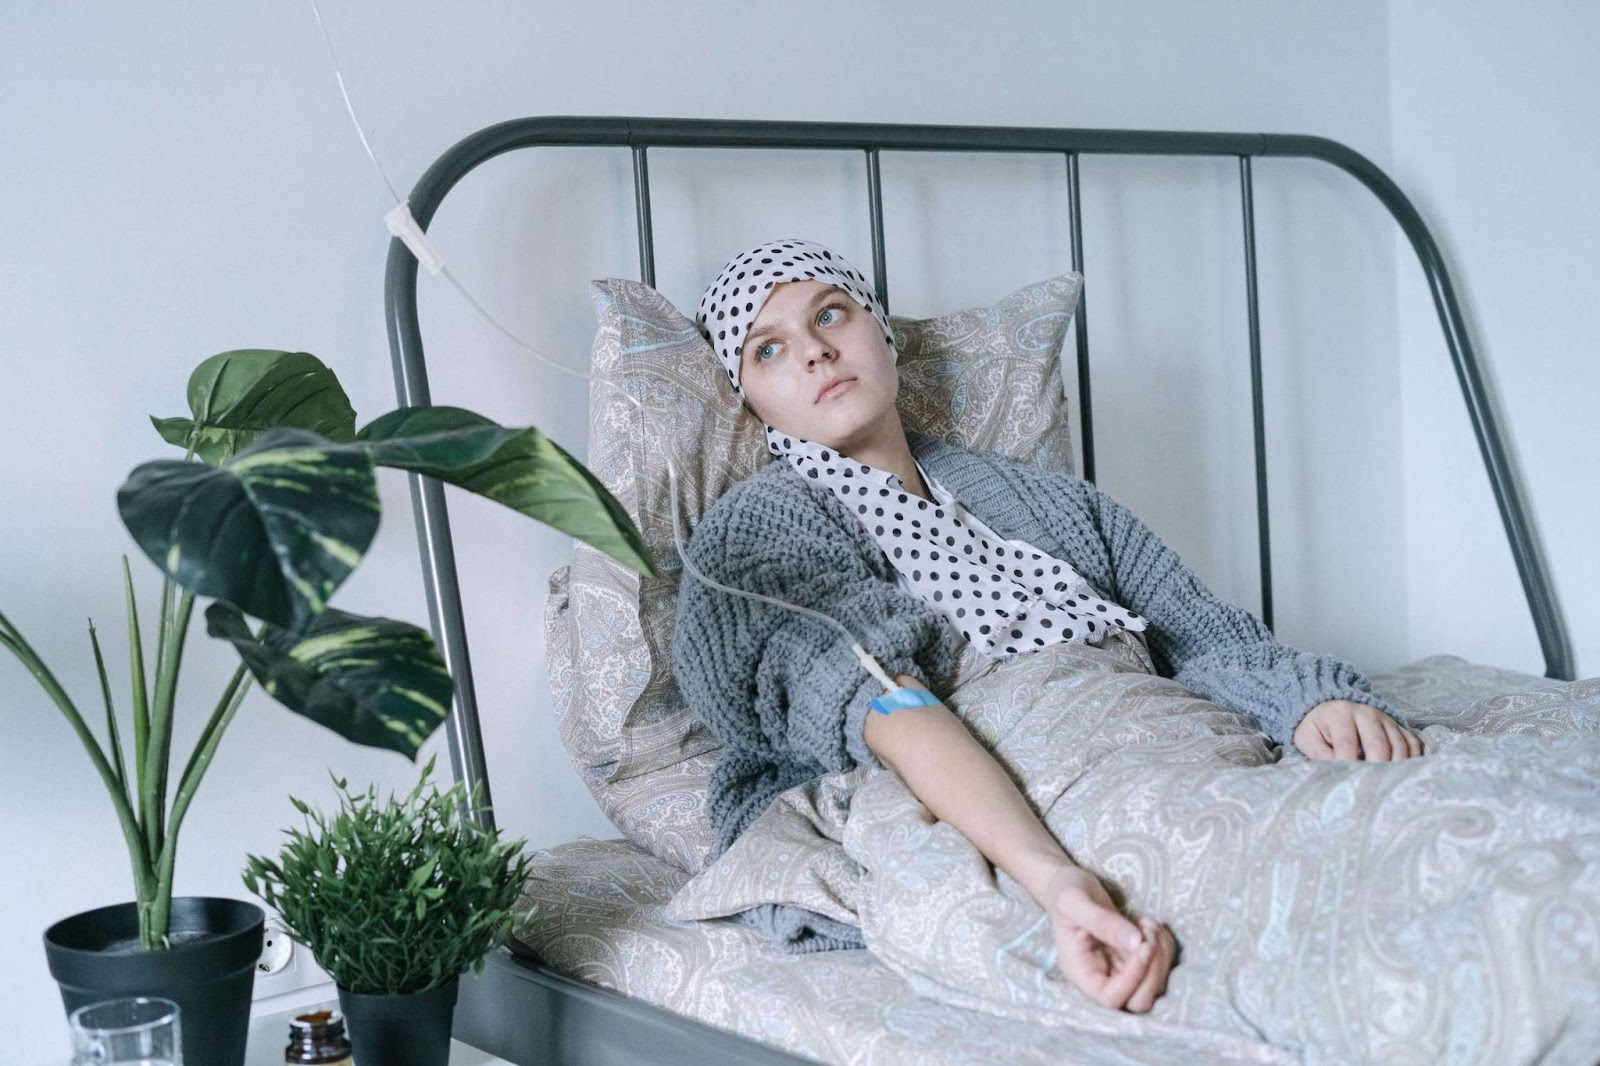 A female cancer patient, lying in bed with an IV in her arm, looking at a window out of frame